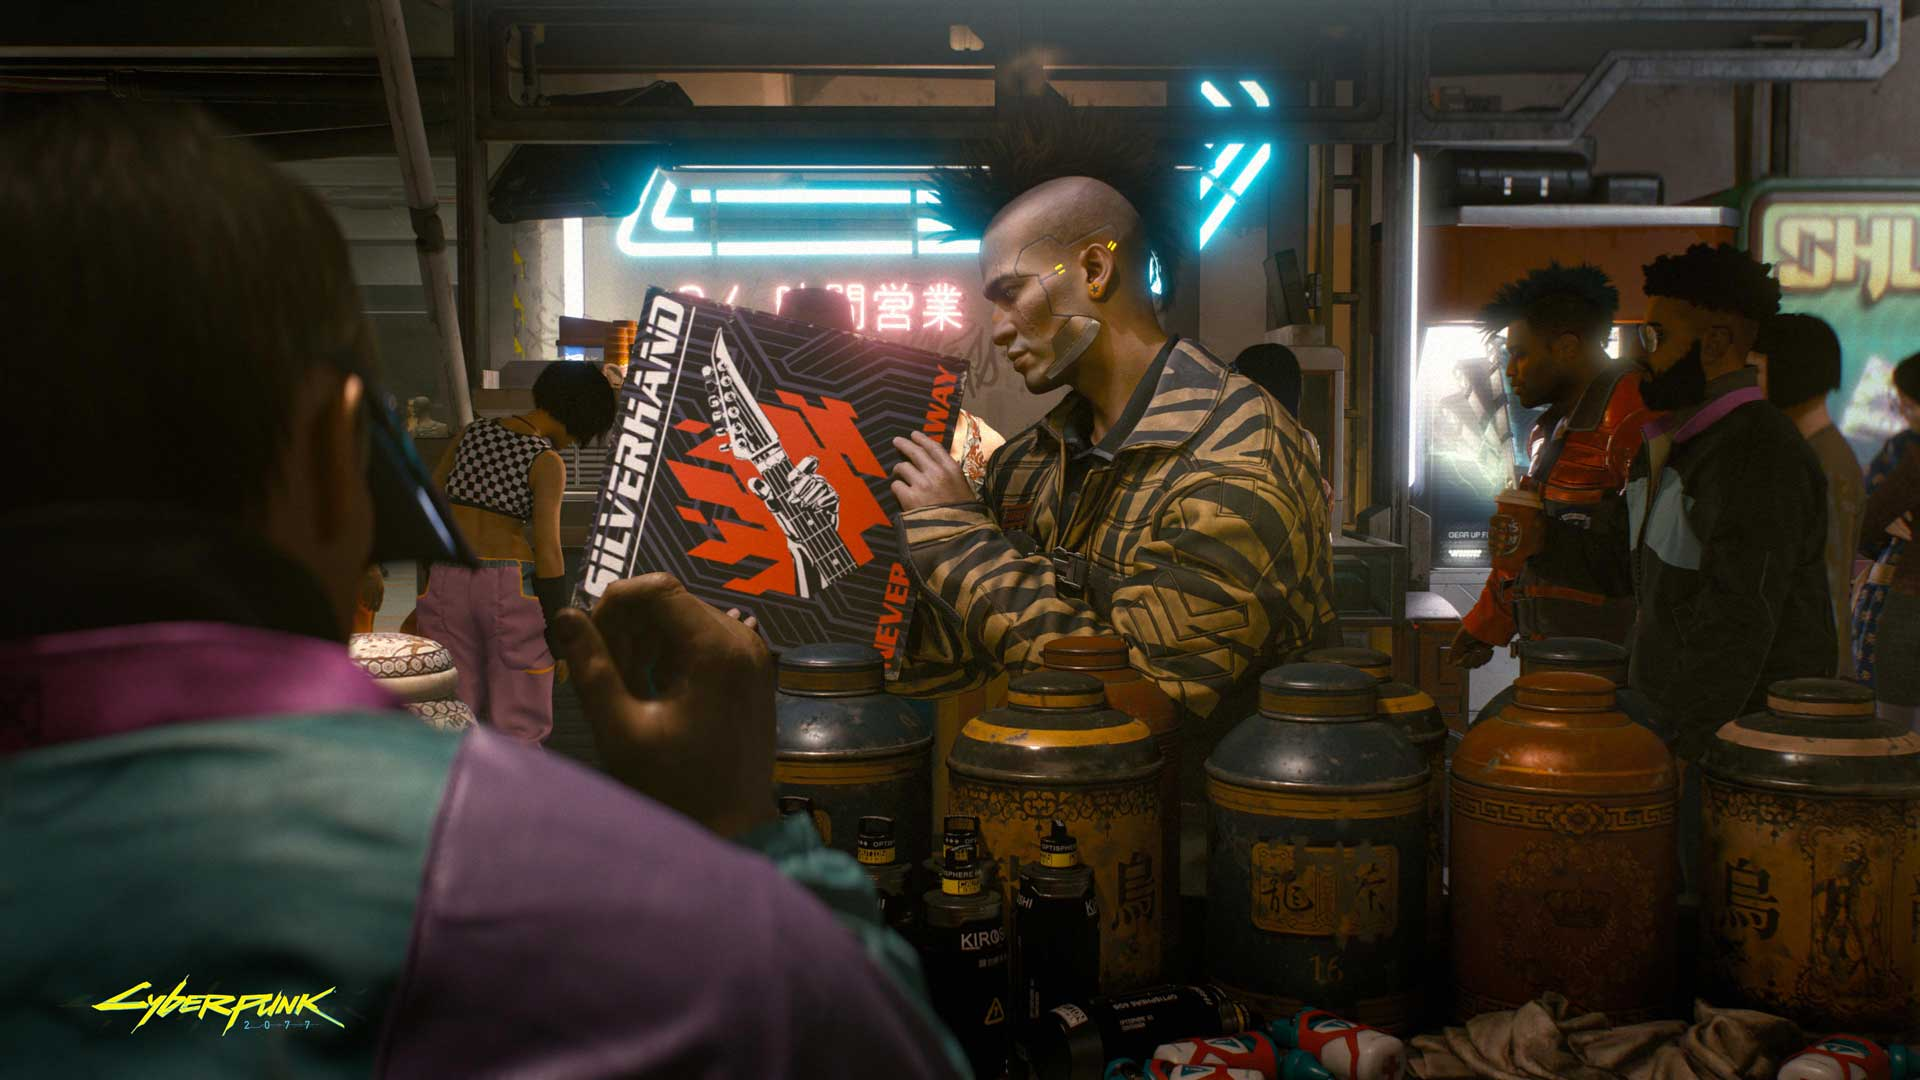 Cyberpunk 2077: 48 minutes of new gameplay